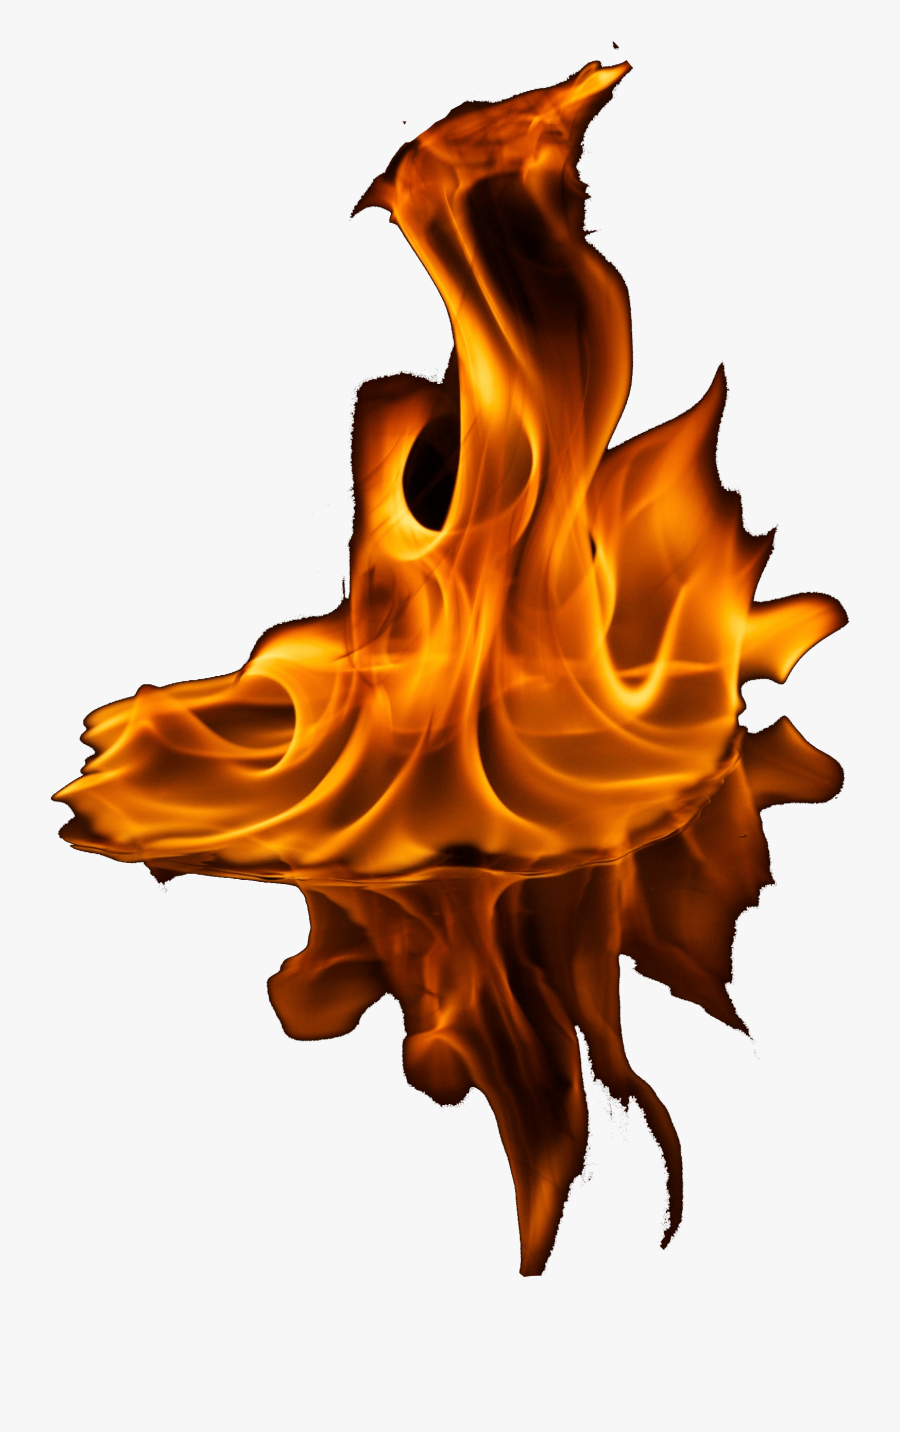 Transparent Flame Emoji Png Fire Wallpaper Iphone Free